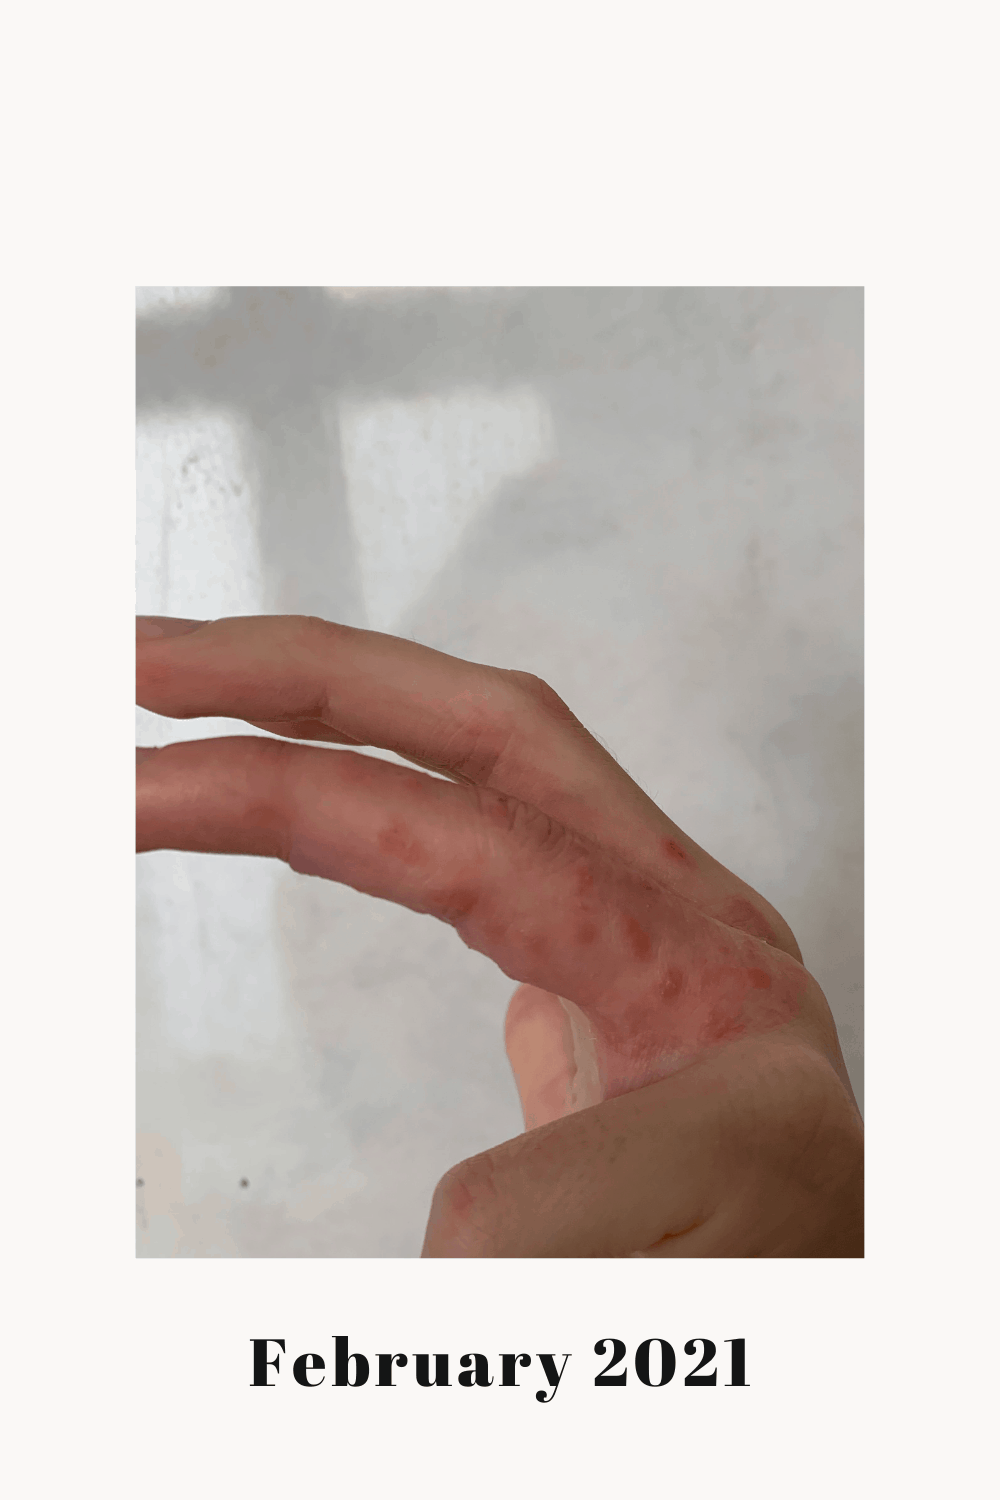 A side view of my left ring finger with a Dyshidrotic Eczema flare.